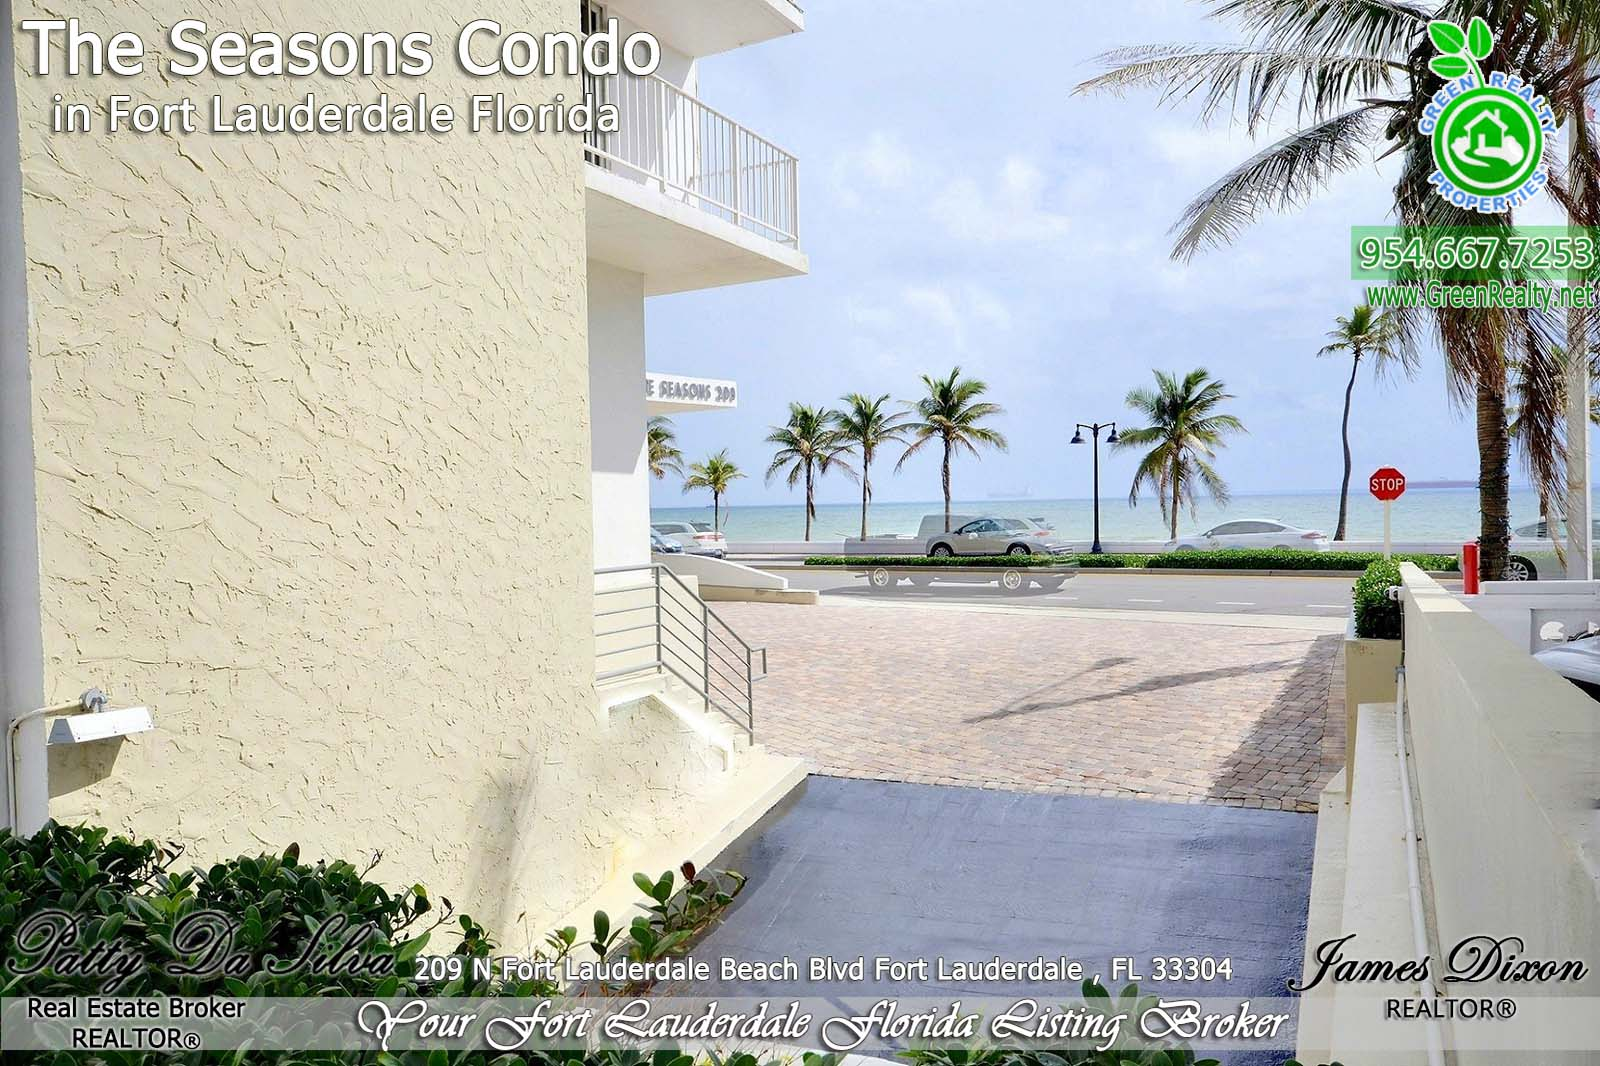 Fort Lauderdale Ocean Front Real Estate and Condos For Sale(24)